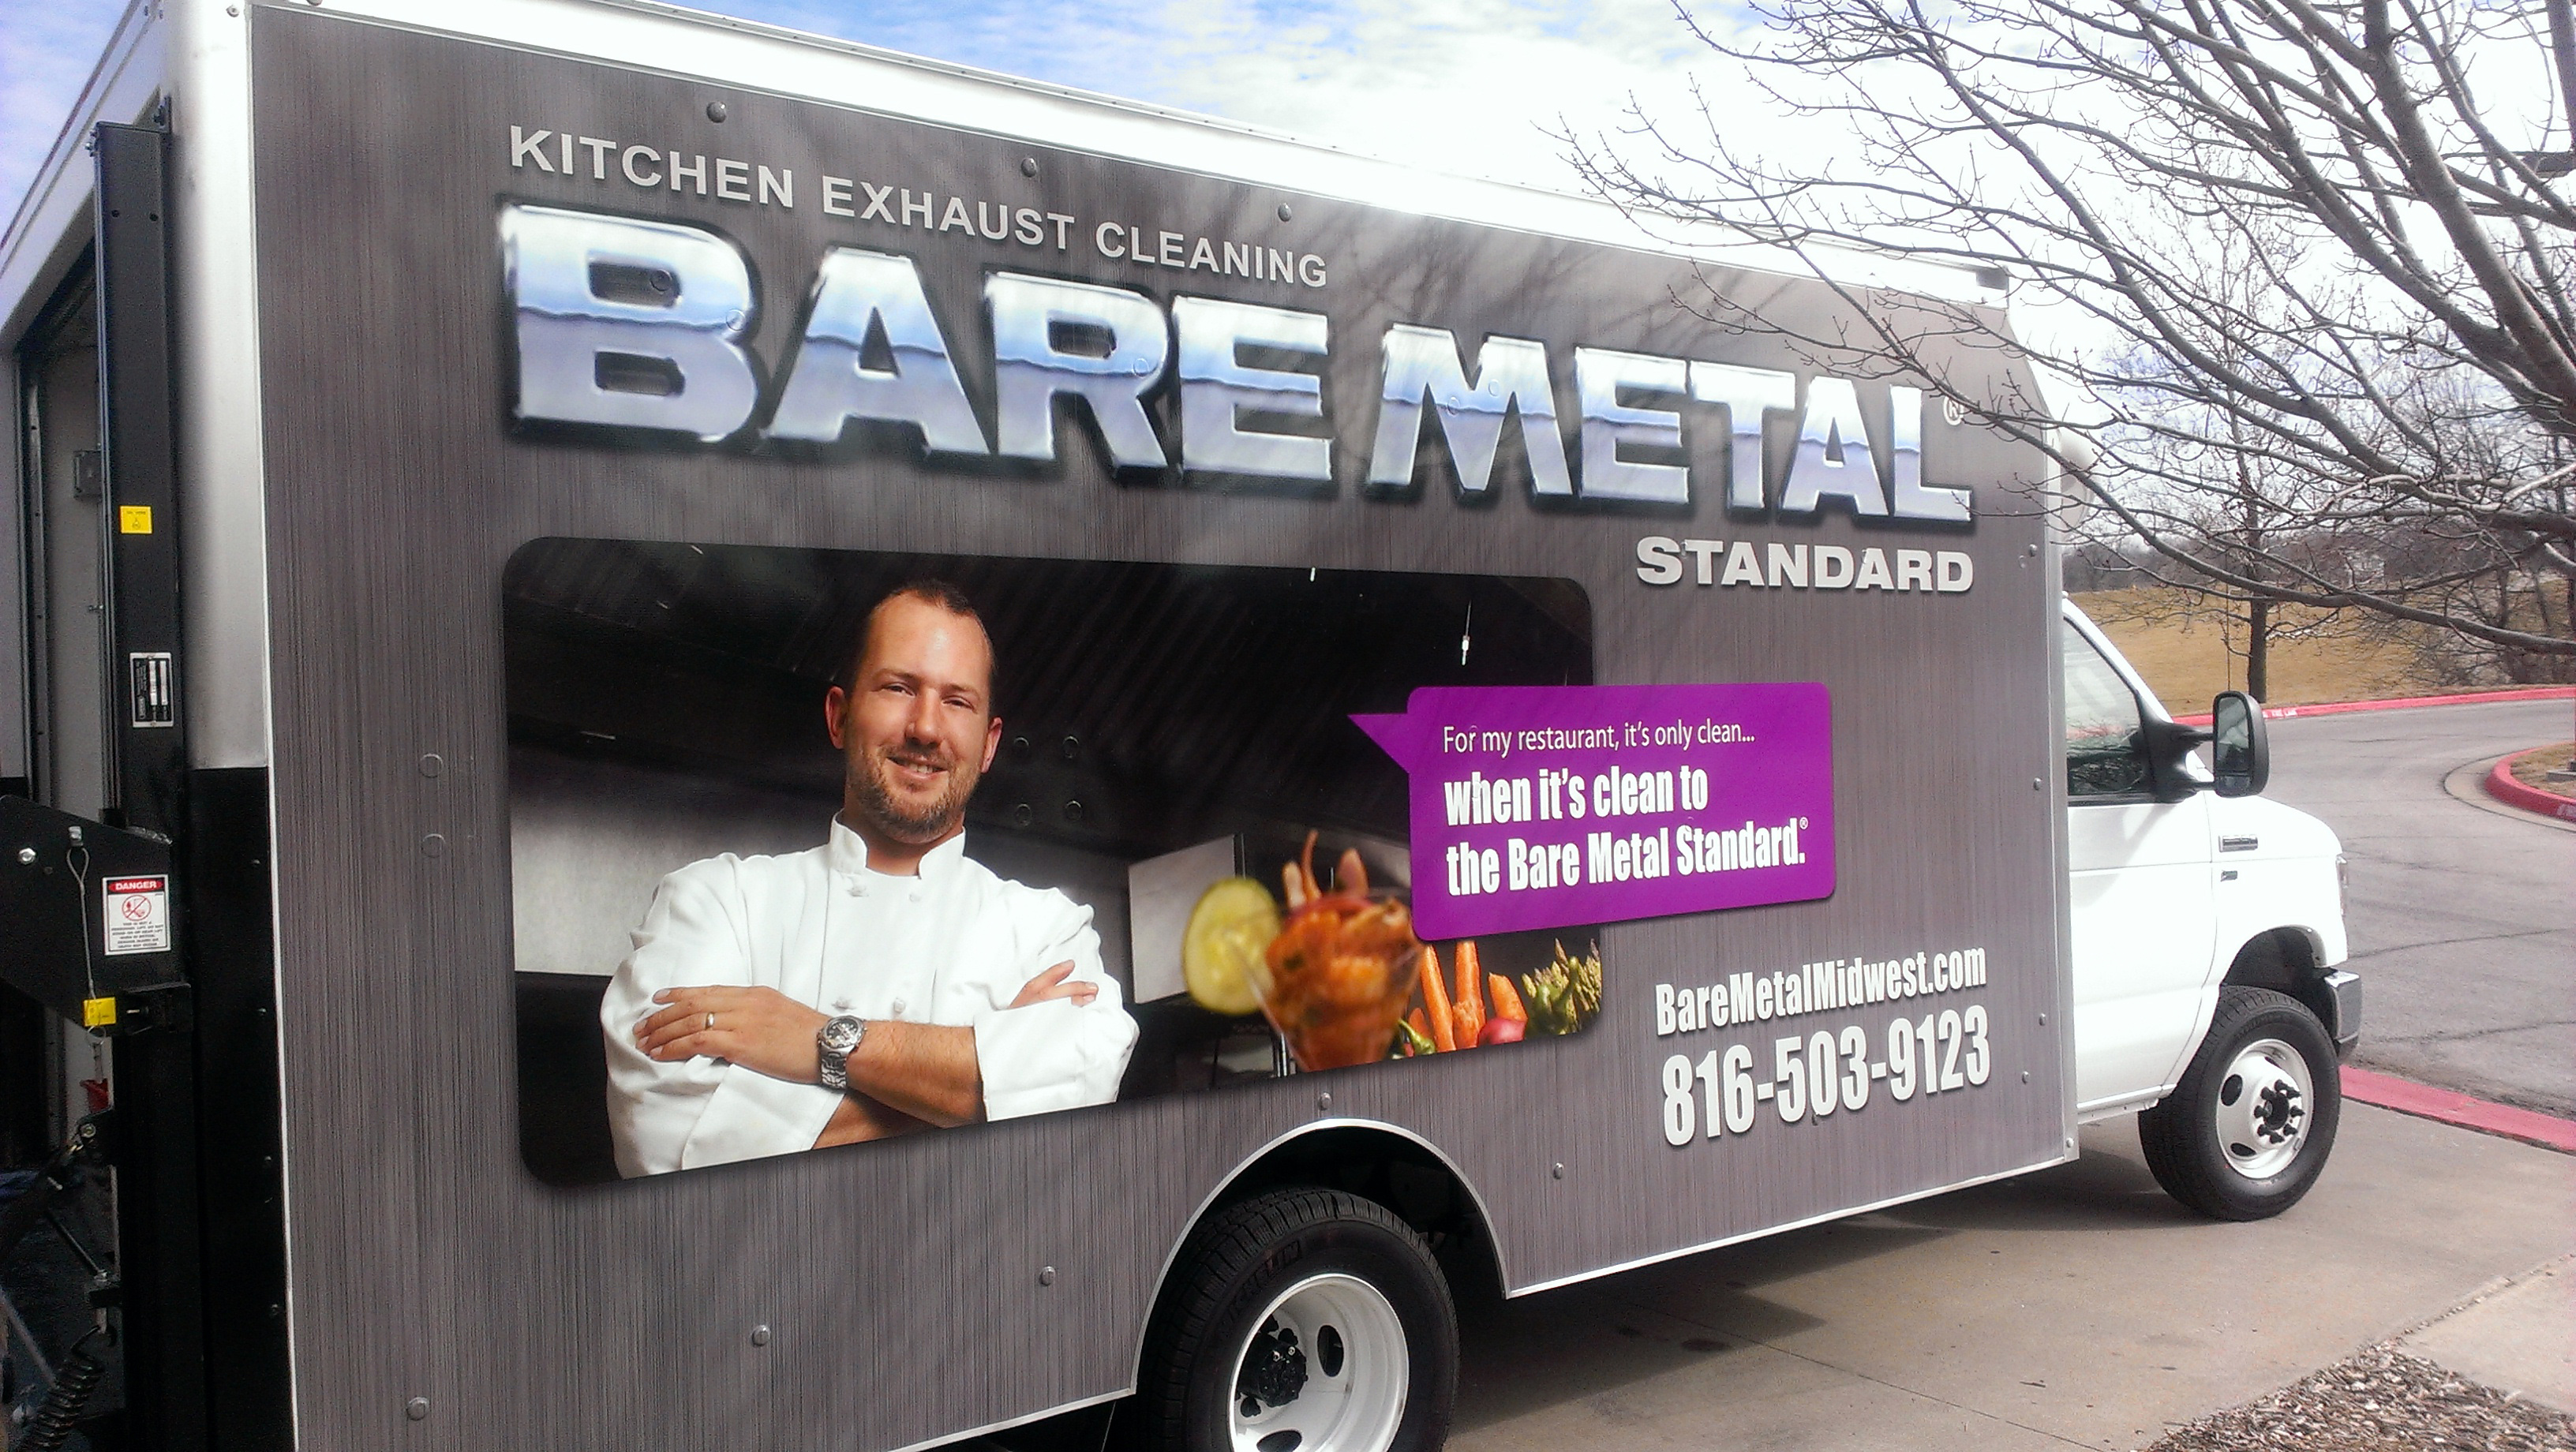 Bare Metal Standard Midwest Opens Offering Superior Kitchen Exhaust Cleaning